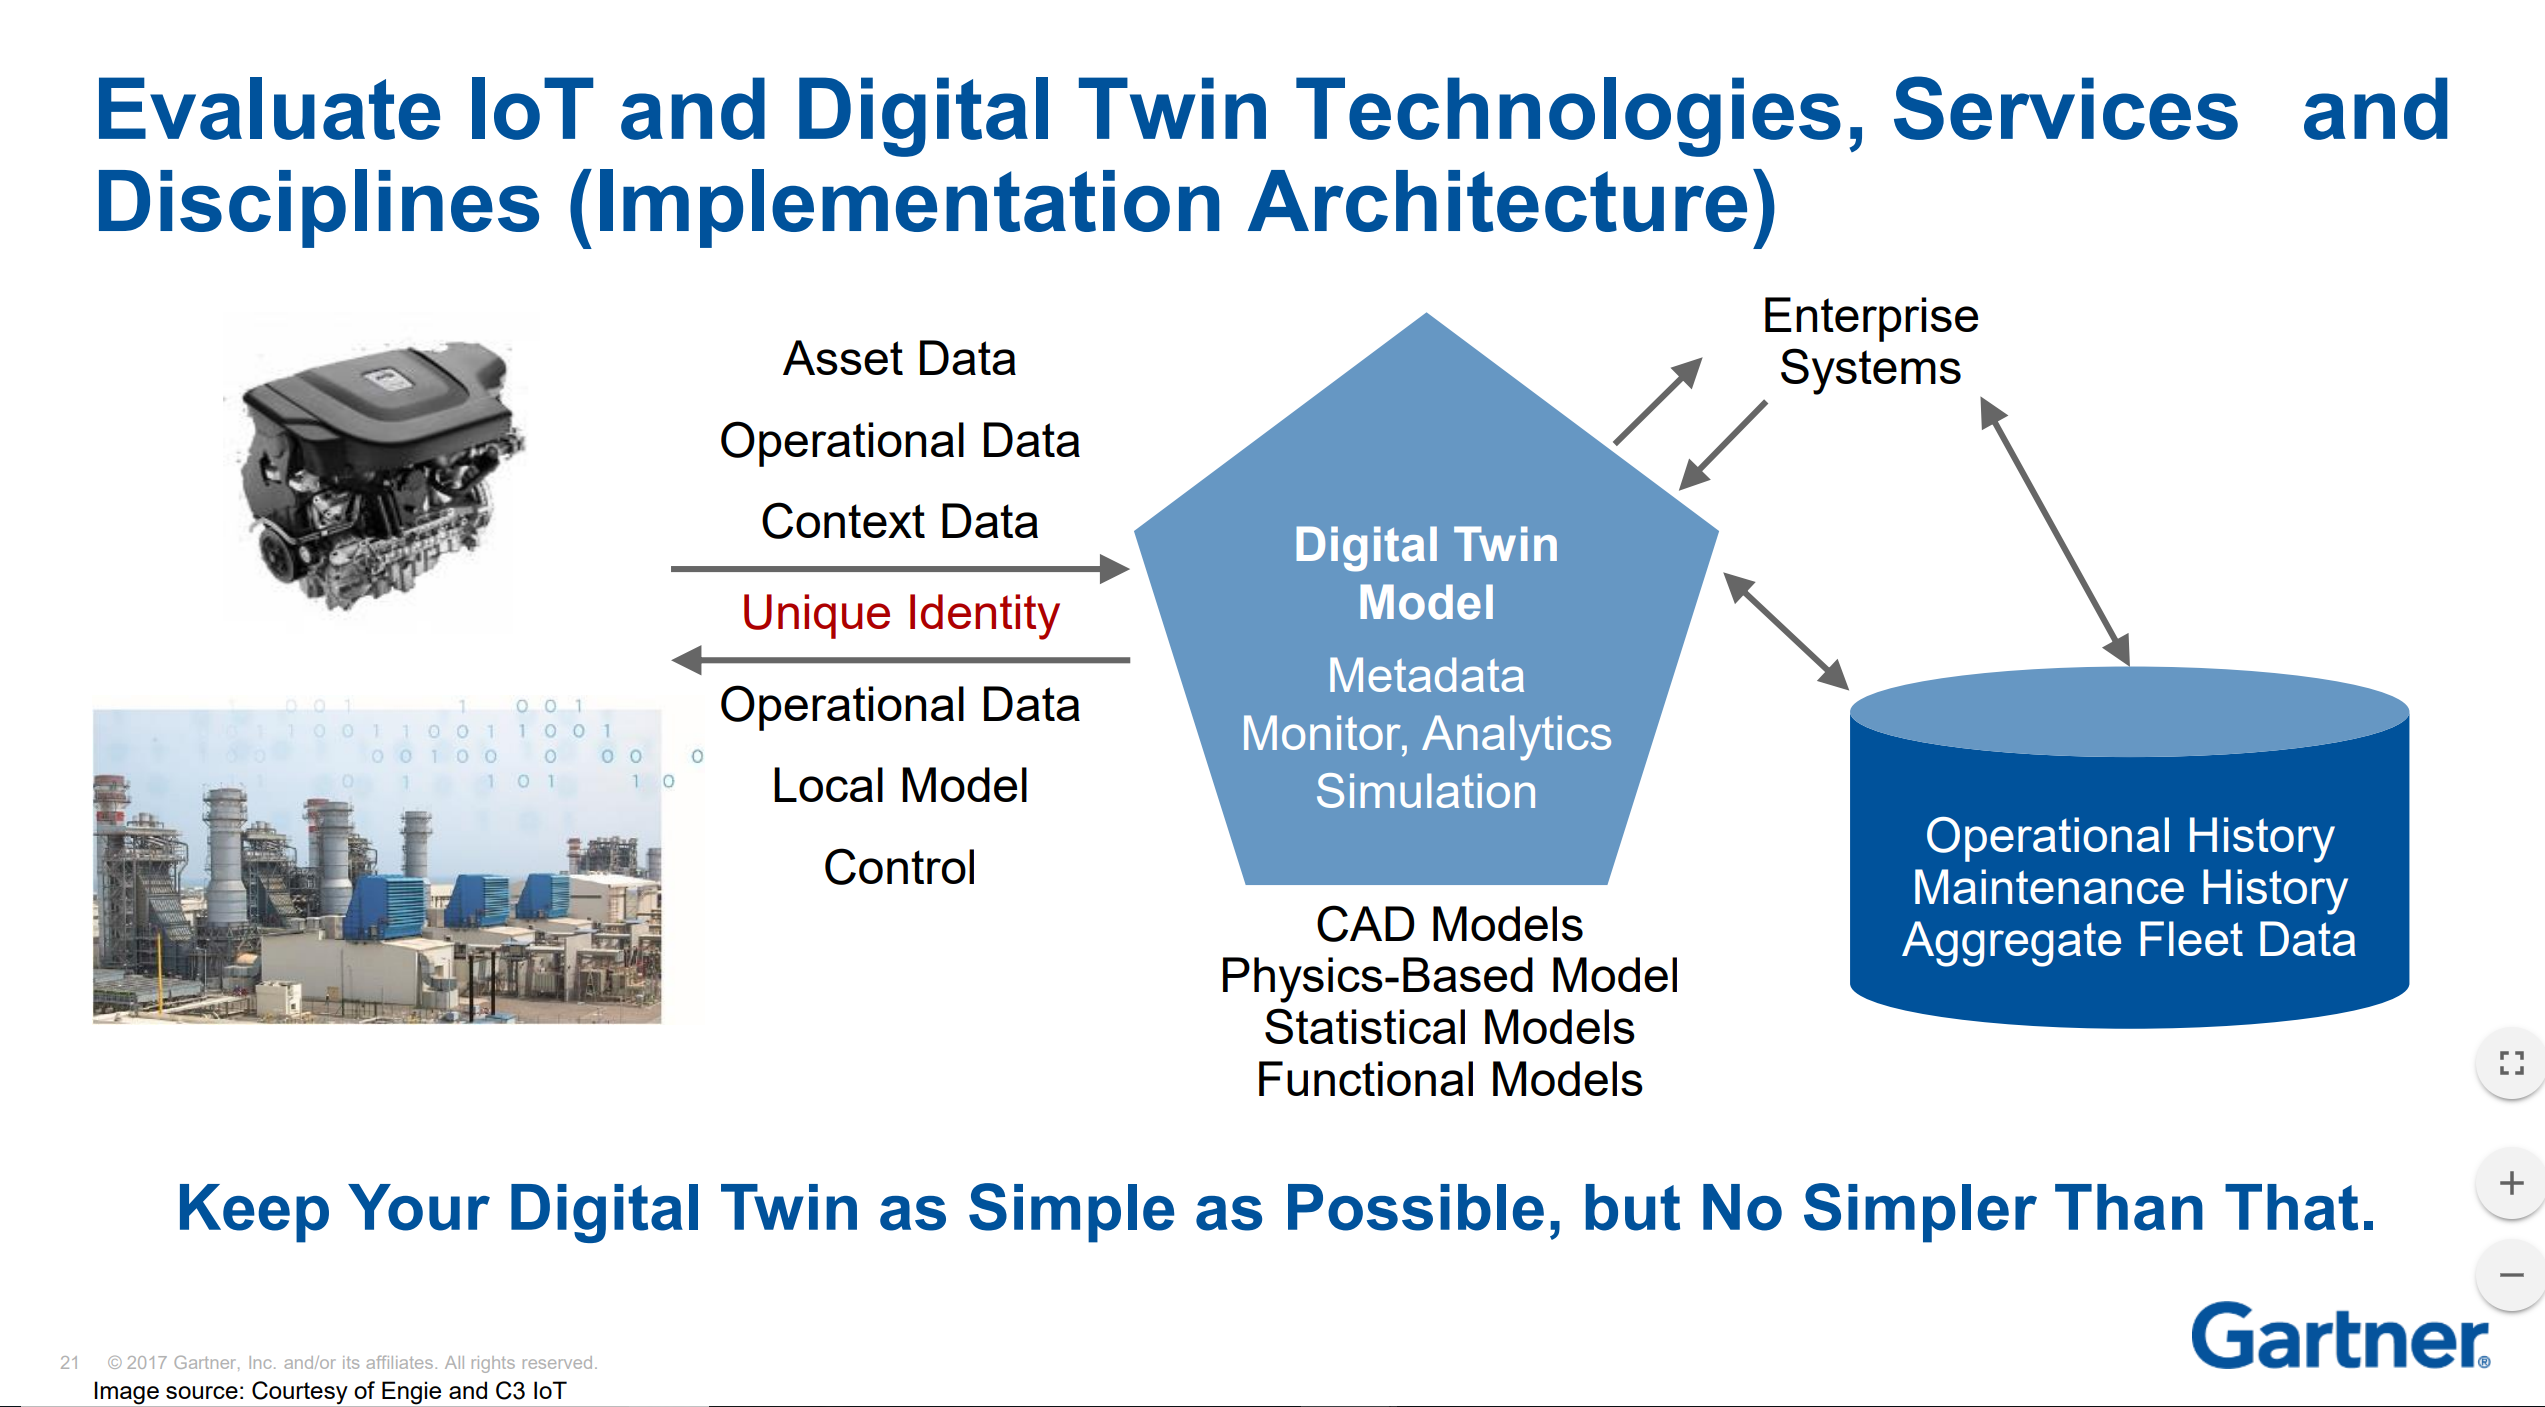 keep your digital twin as simple as possible  how about